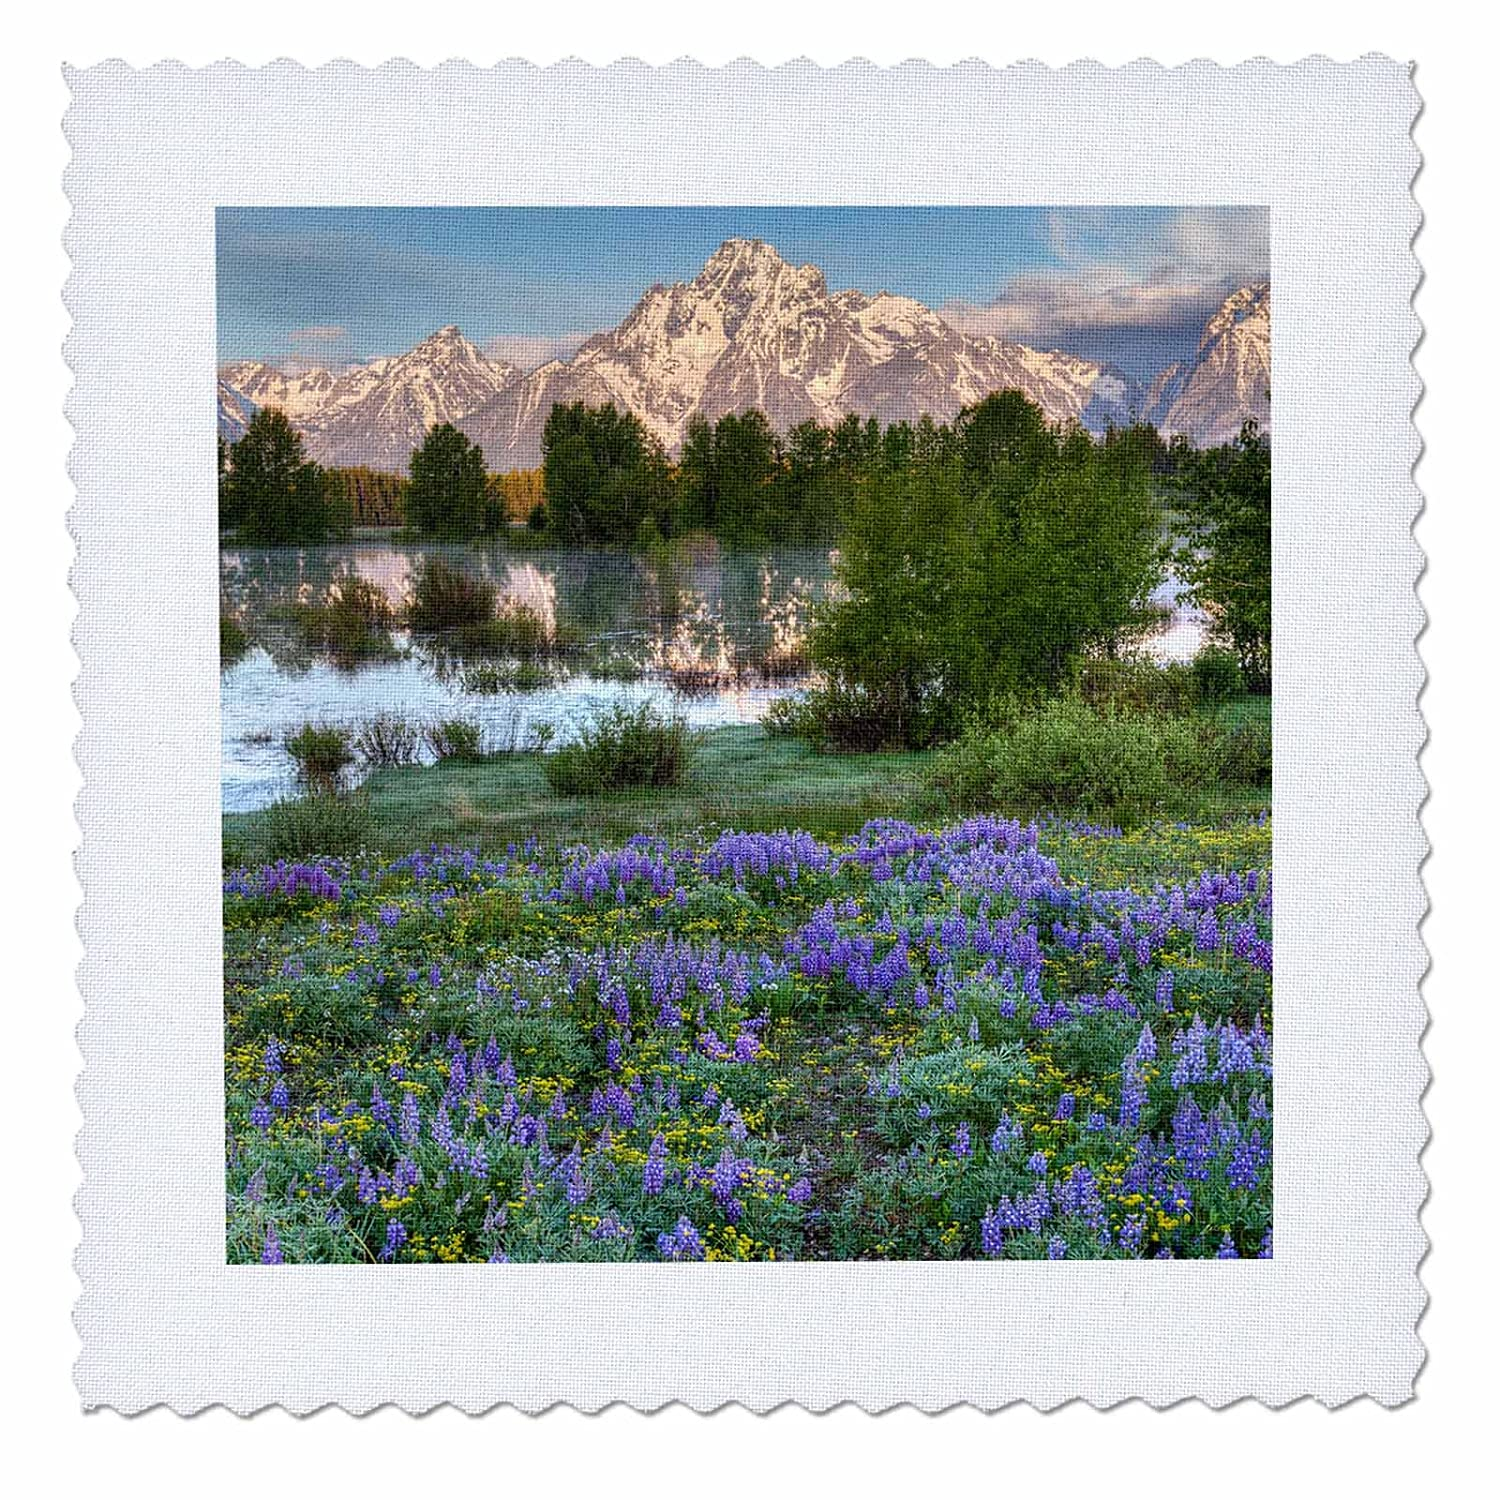 3dRose Danita Delimont USA Mountains flowers Wyoming Grand Teton National Park qs/_279811/_6 16x16 inch quilt square mountains